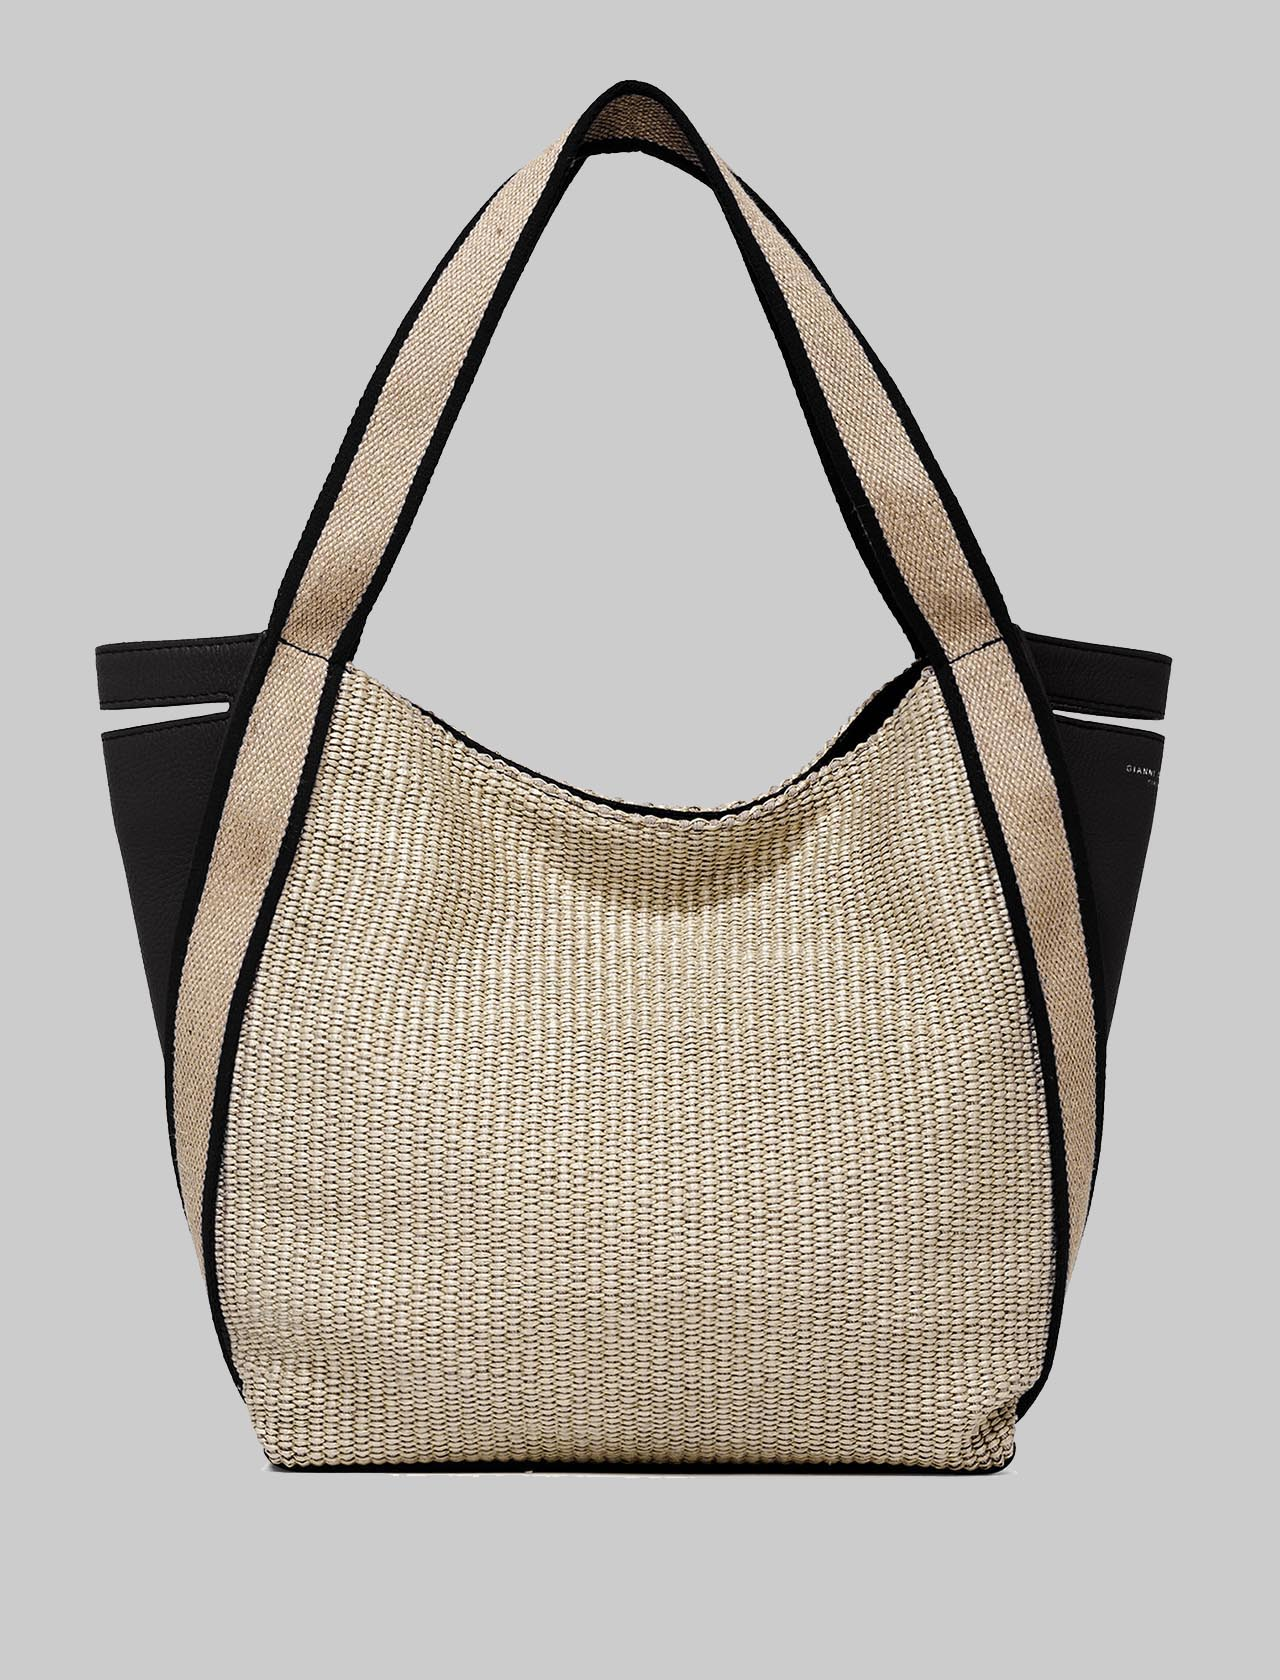 Asia Woman Shoulder Bag In Black Leather And Natural Fabric With Double Handles Gianni Chiarini | Bags and backpacks | BS7630698